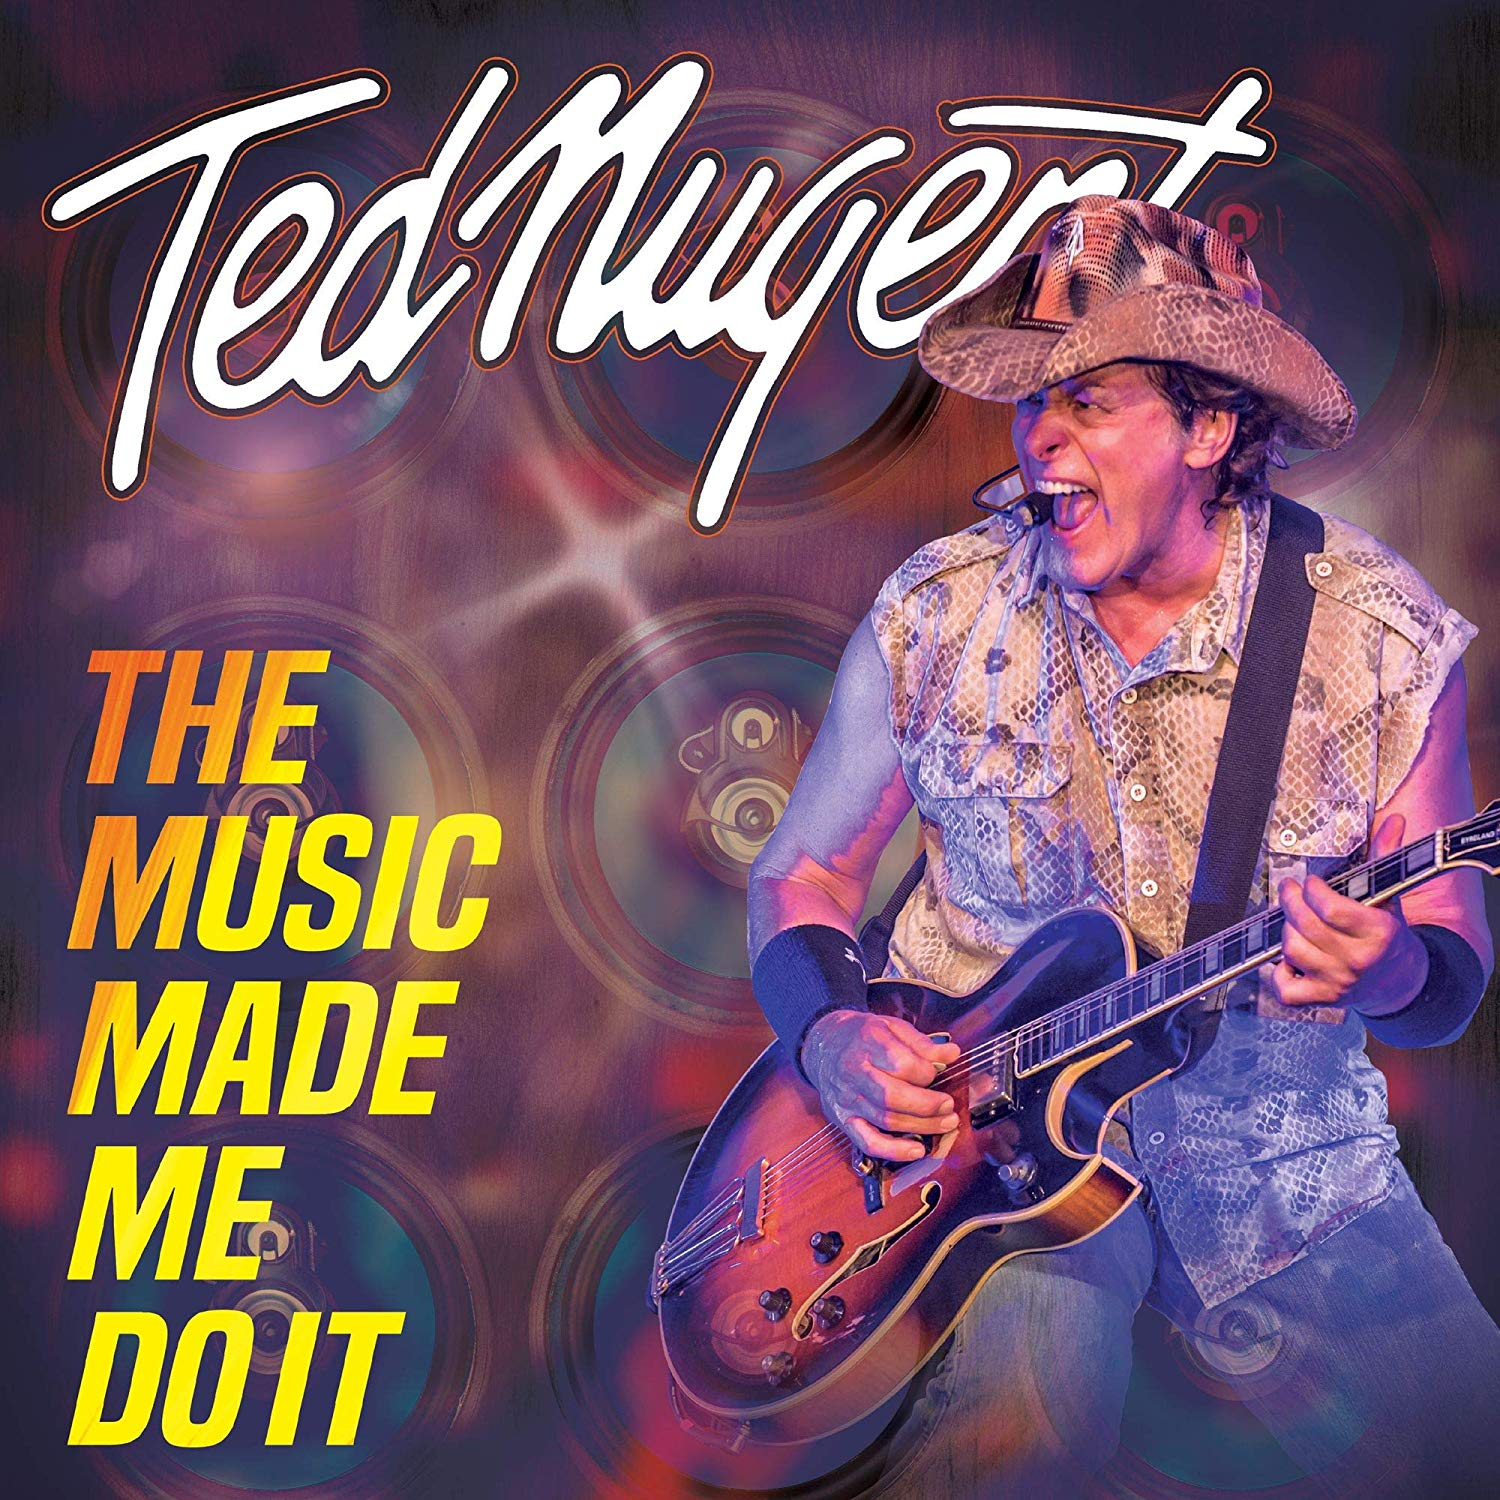 ted nugent-the music made me do it